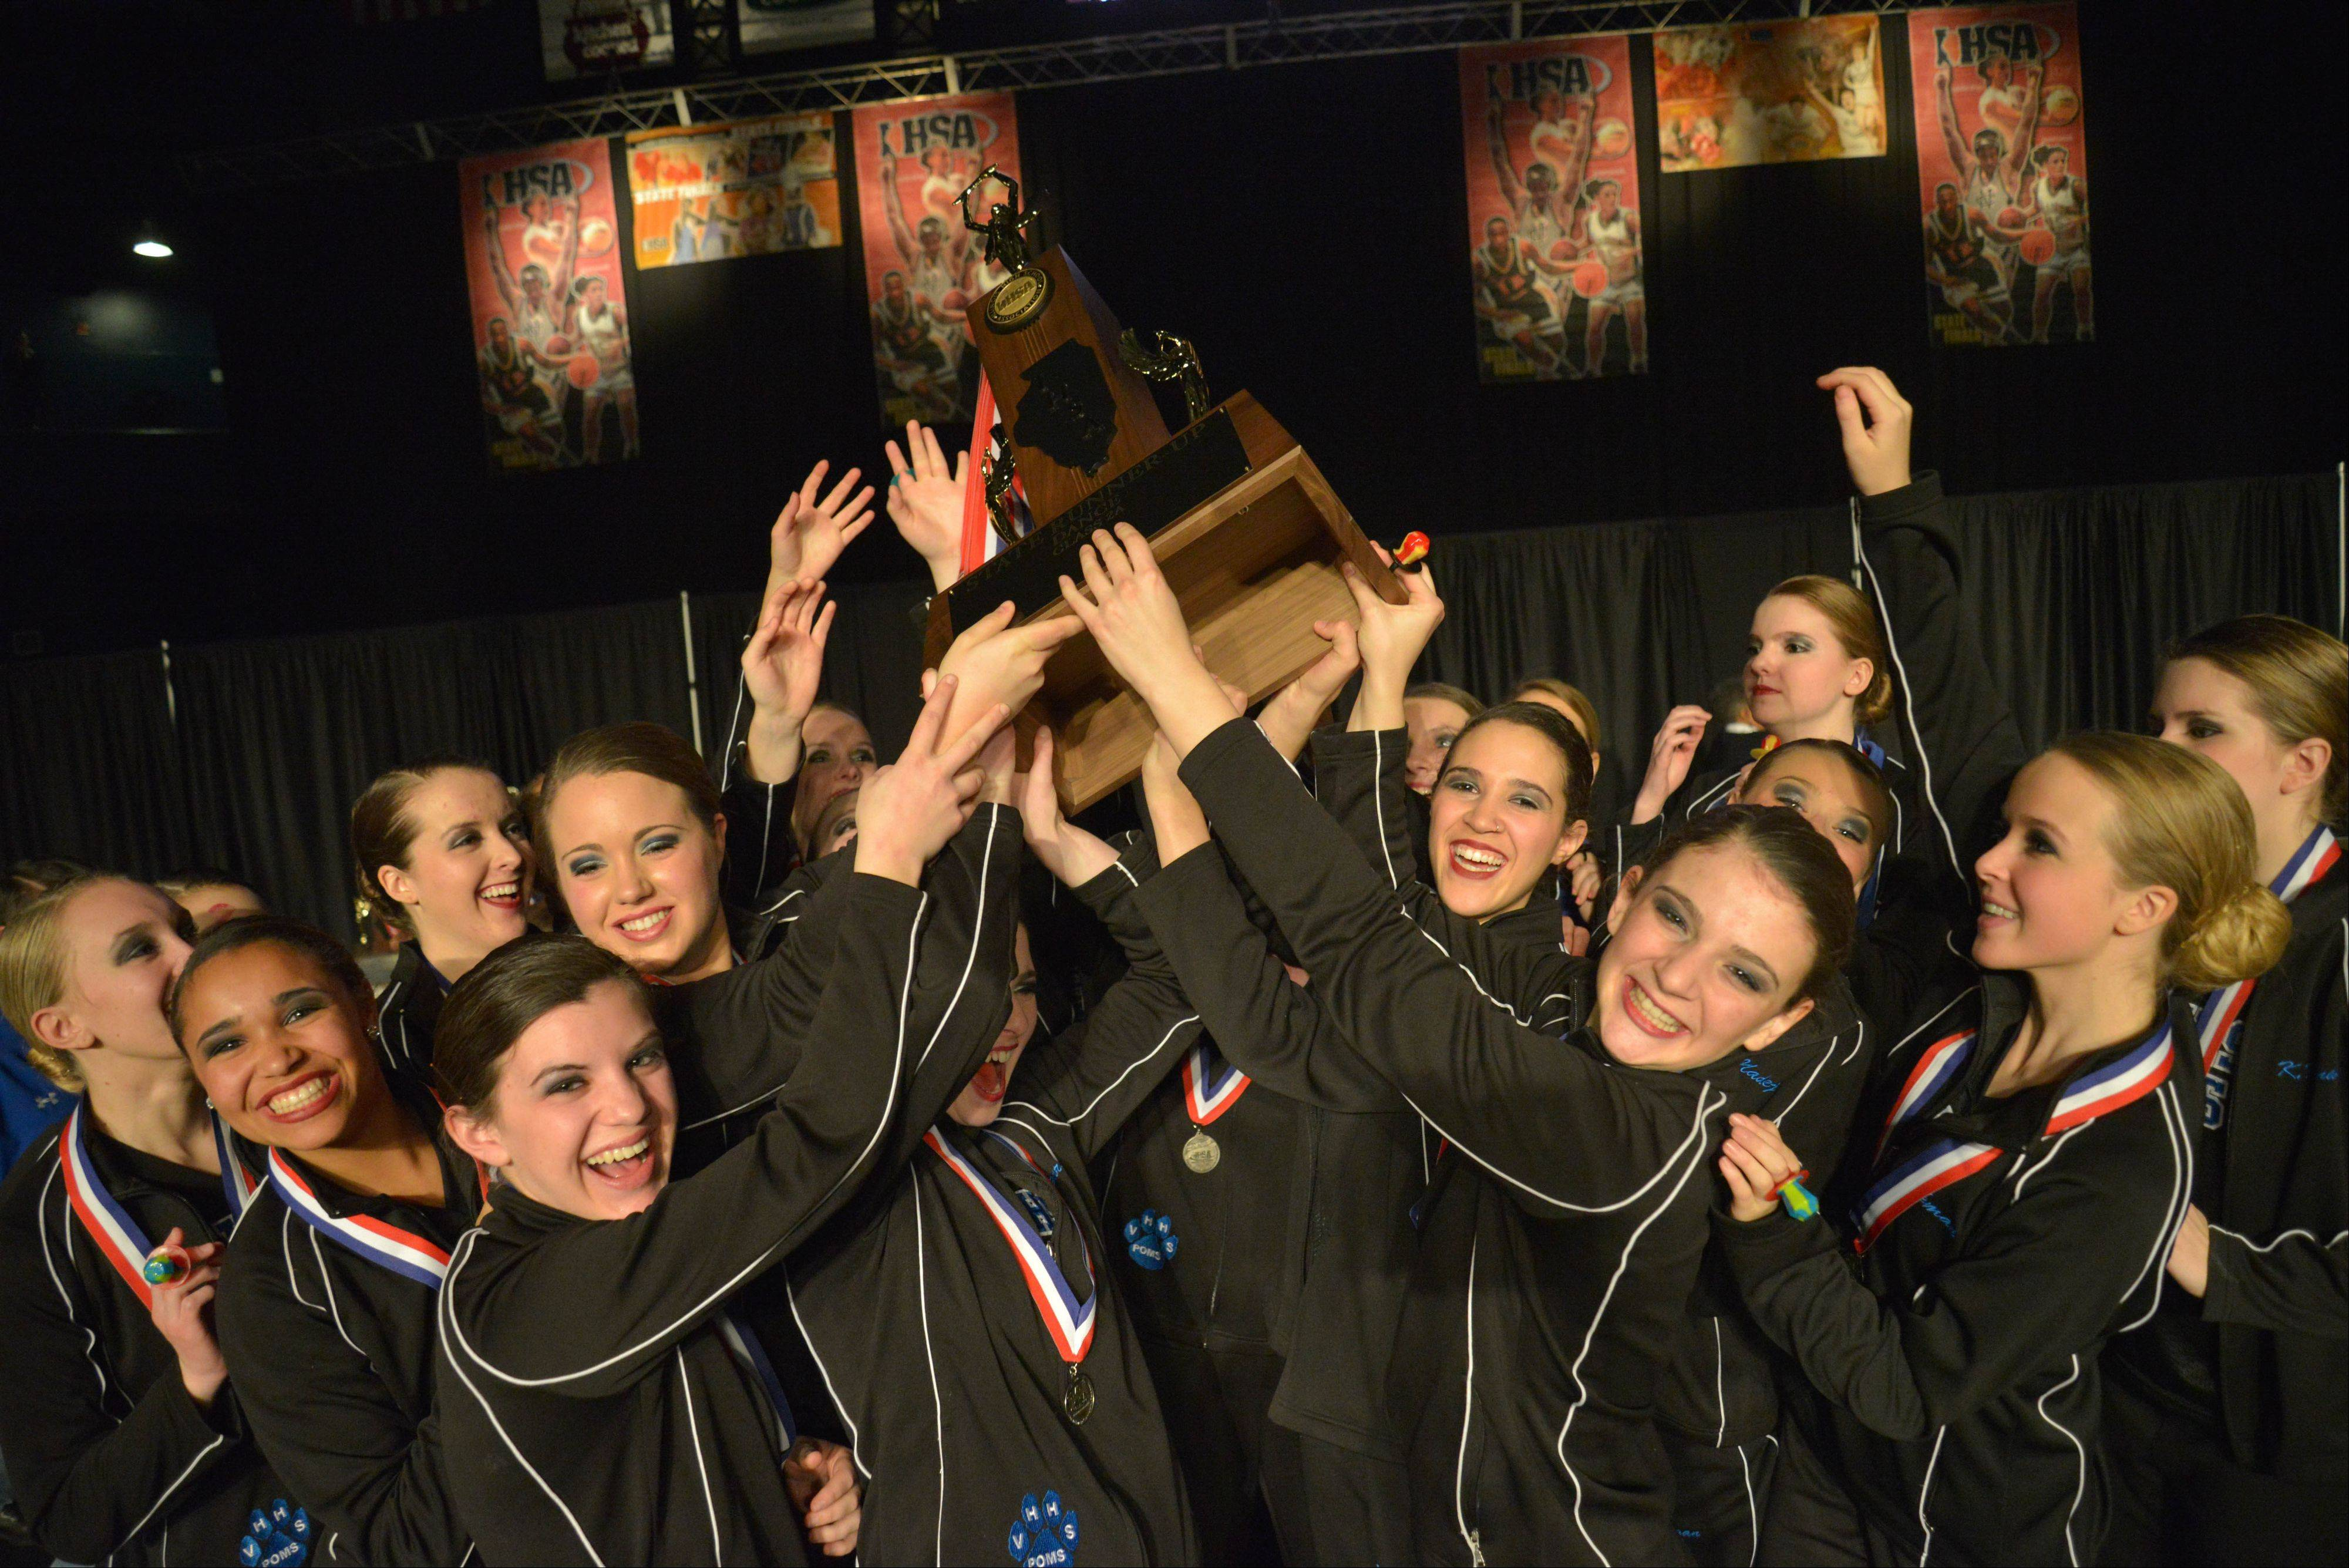 Vernon HIlls High School won second place at the 2A IHSA Dance State Final at U.S. Cellular Coliseum in Bloomington Saturday. 90 teams vied for state champion at this event.